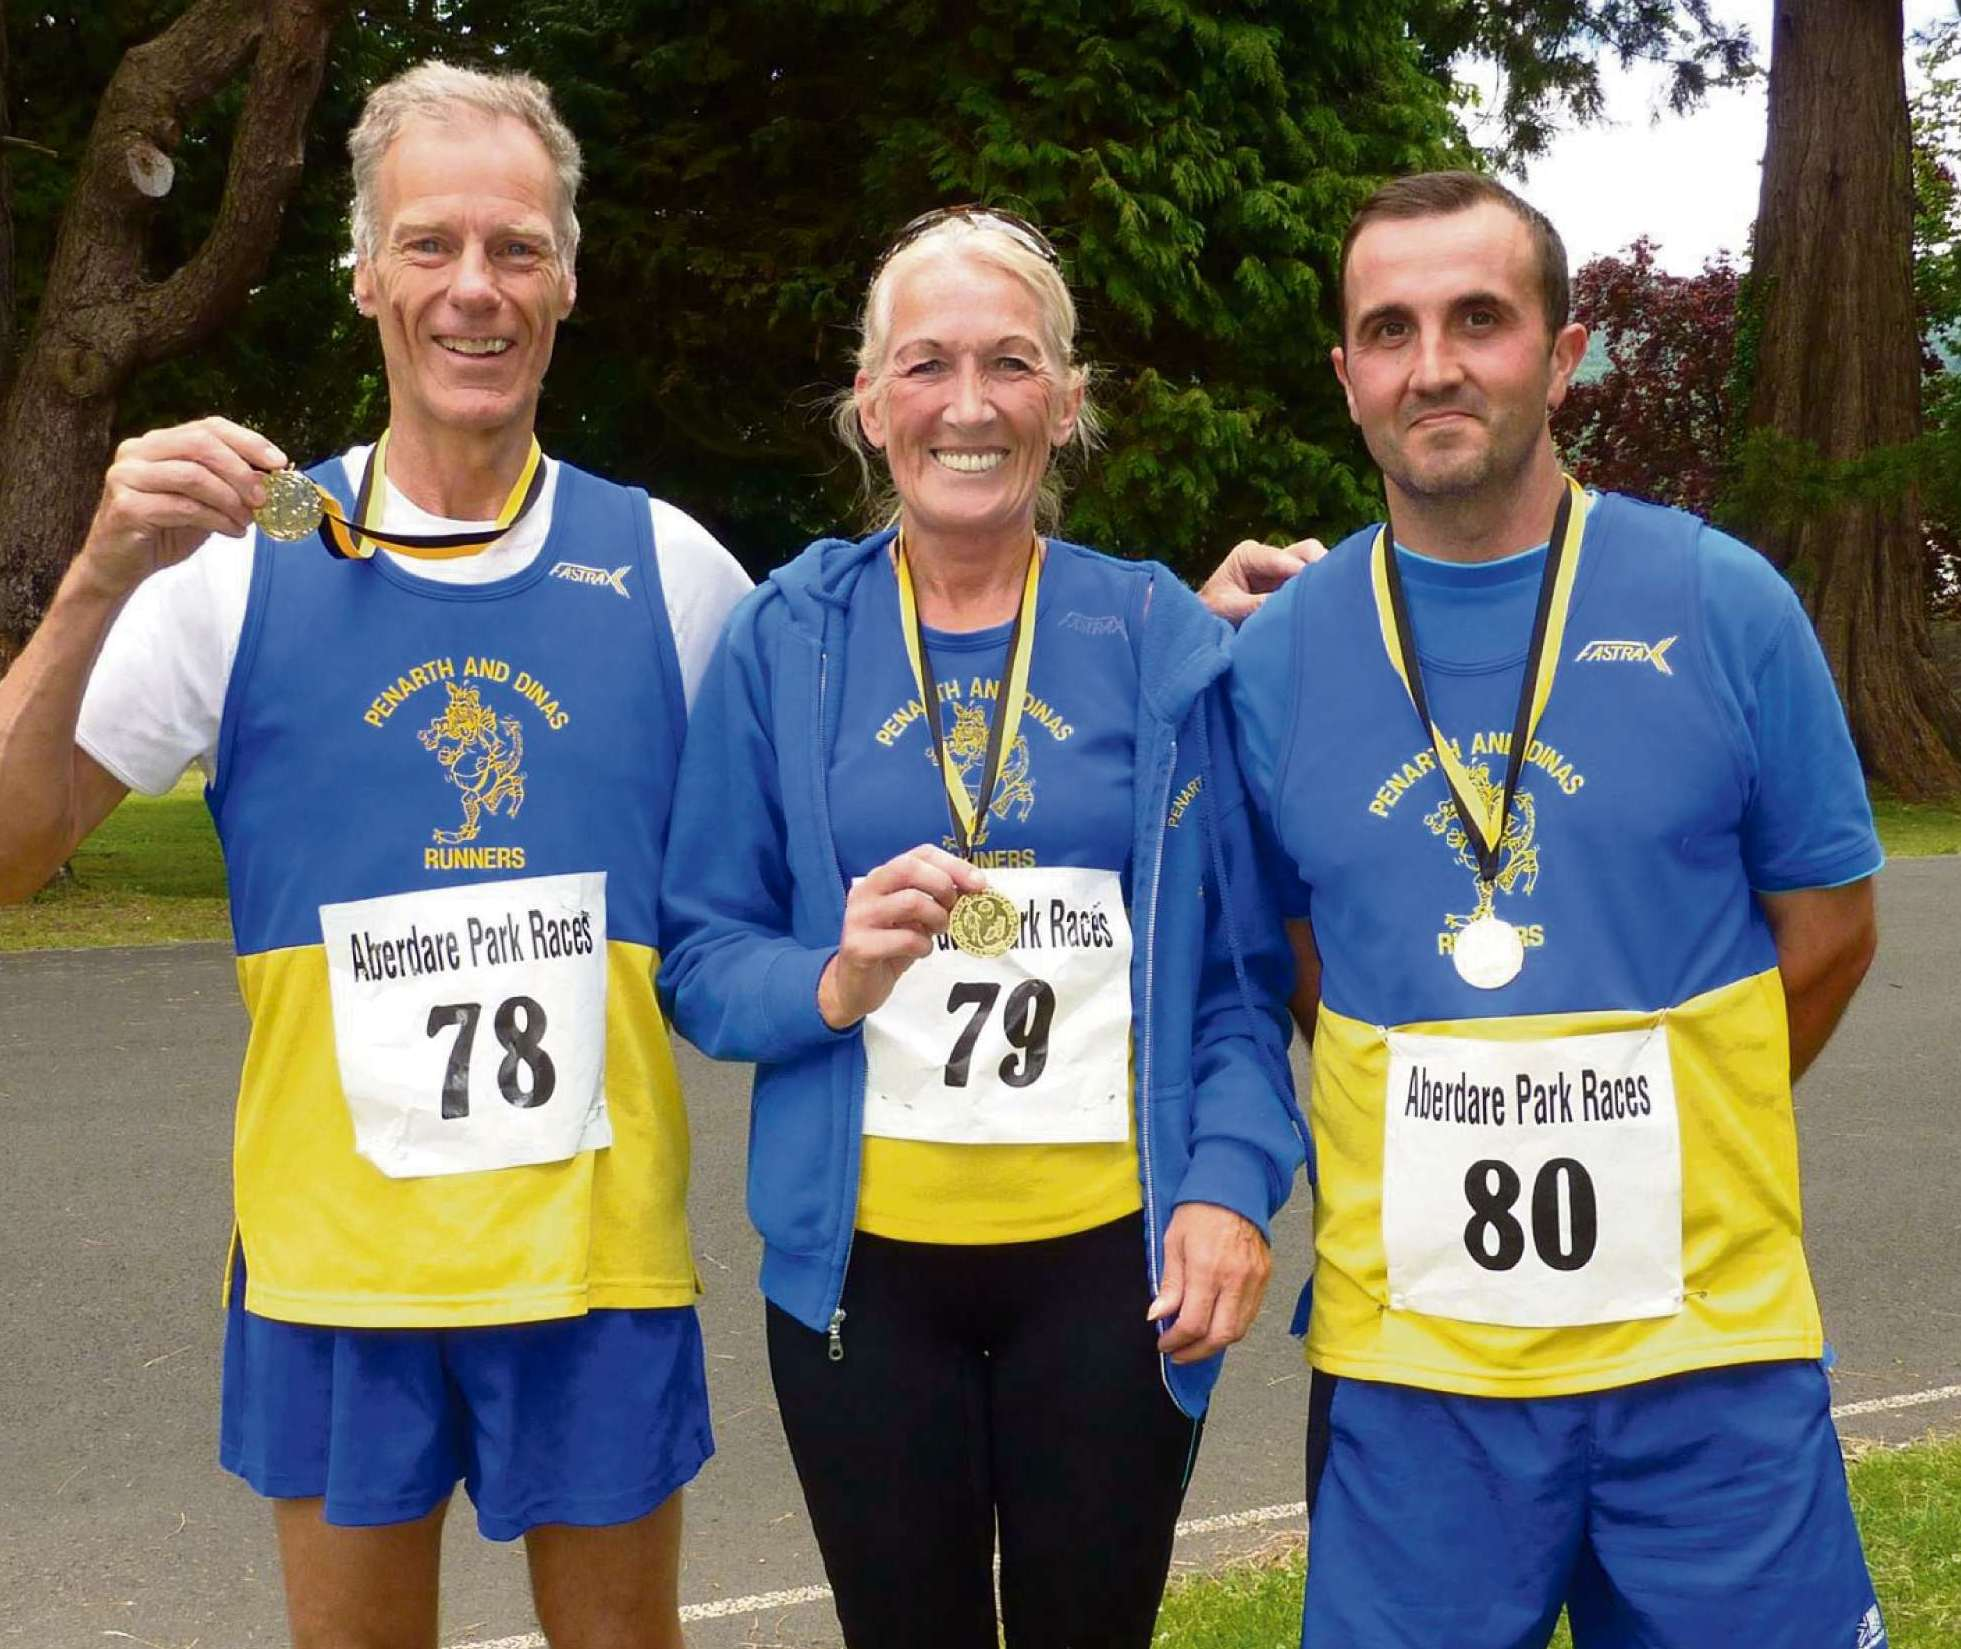 TEAM RUNNERS: (from left) Malcolm Bradley, Yvonne Williams and Glenn Powell